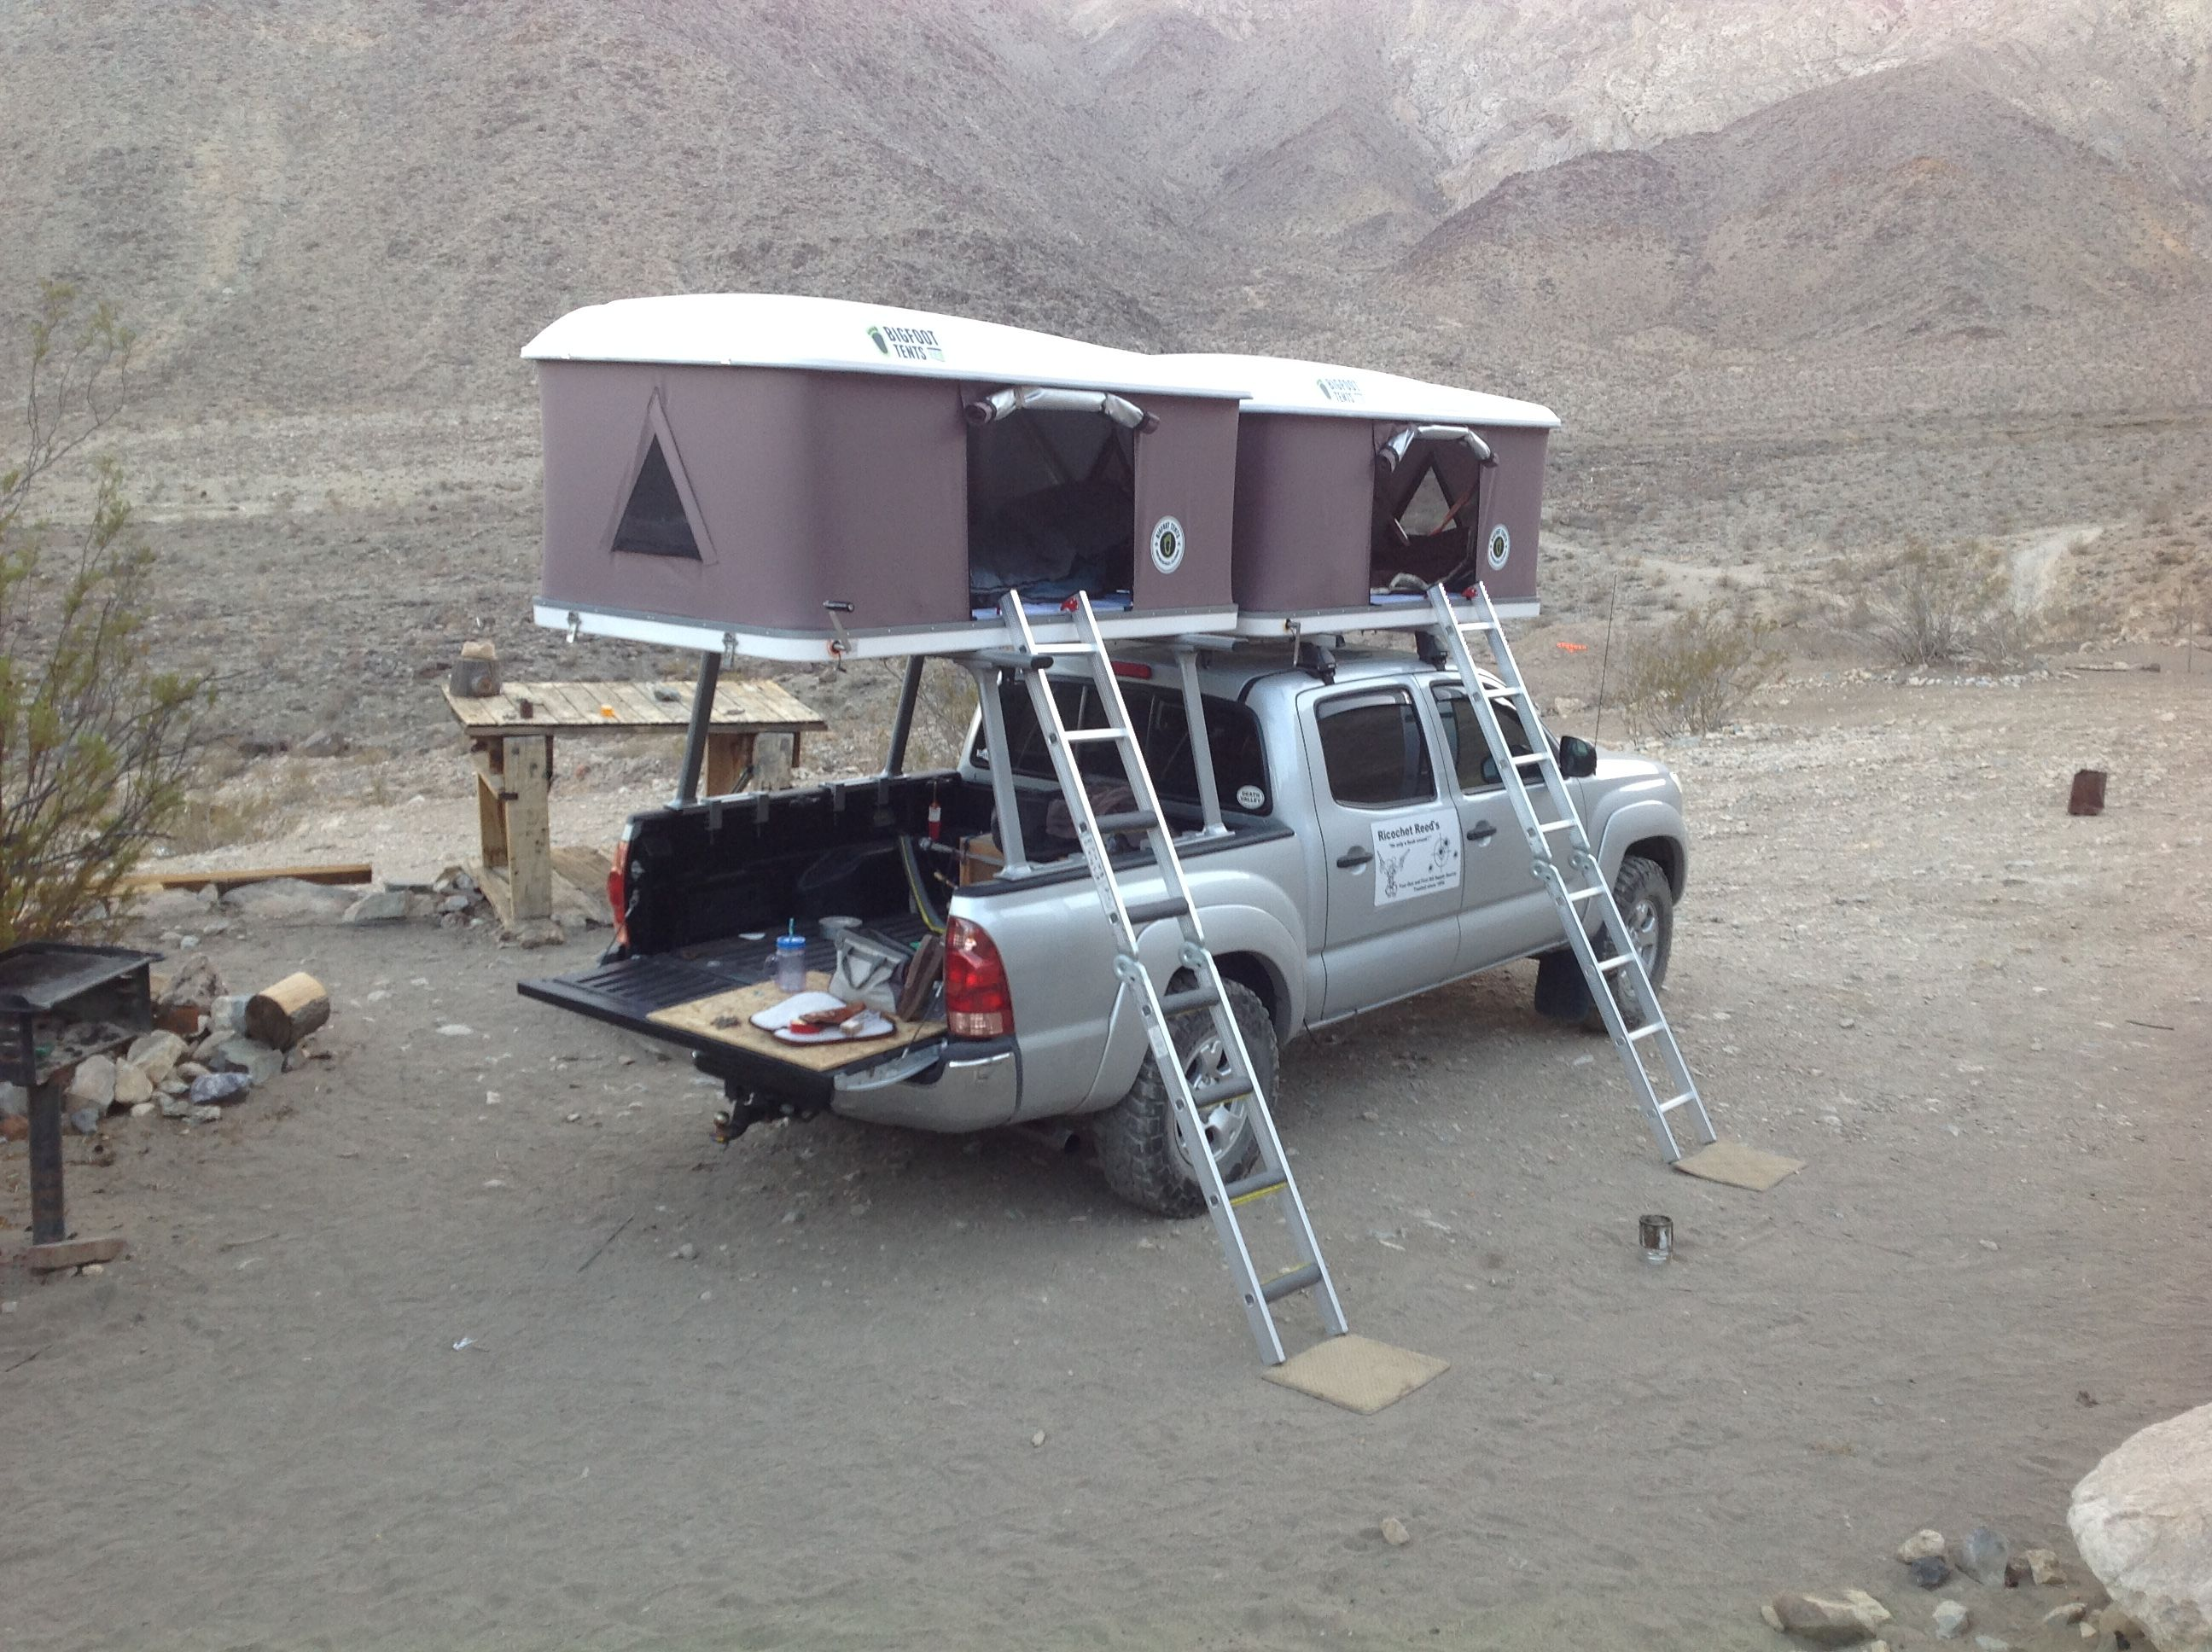 Two Roof Top Tents Installed On The Same Toyota Tacoma Truck Www Bigfoottents Com Roof Tent Roof Top Tent Tacoma Truck